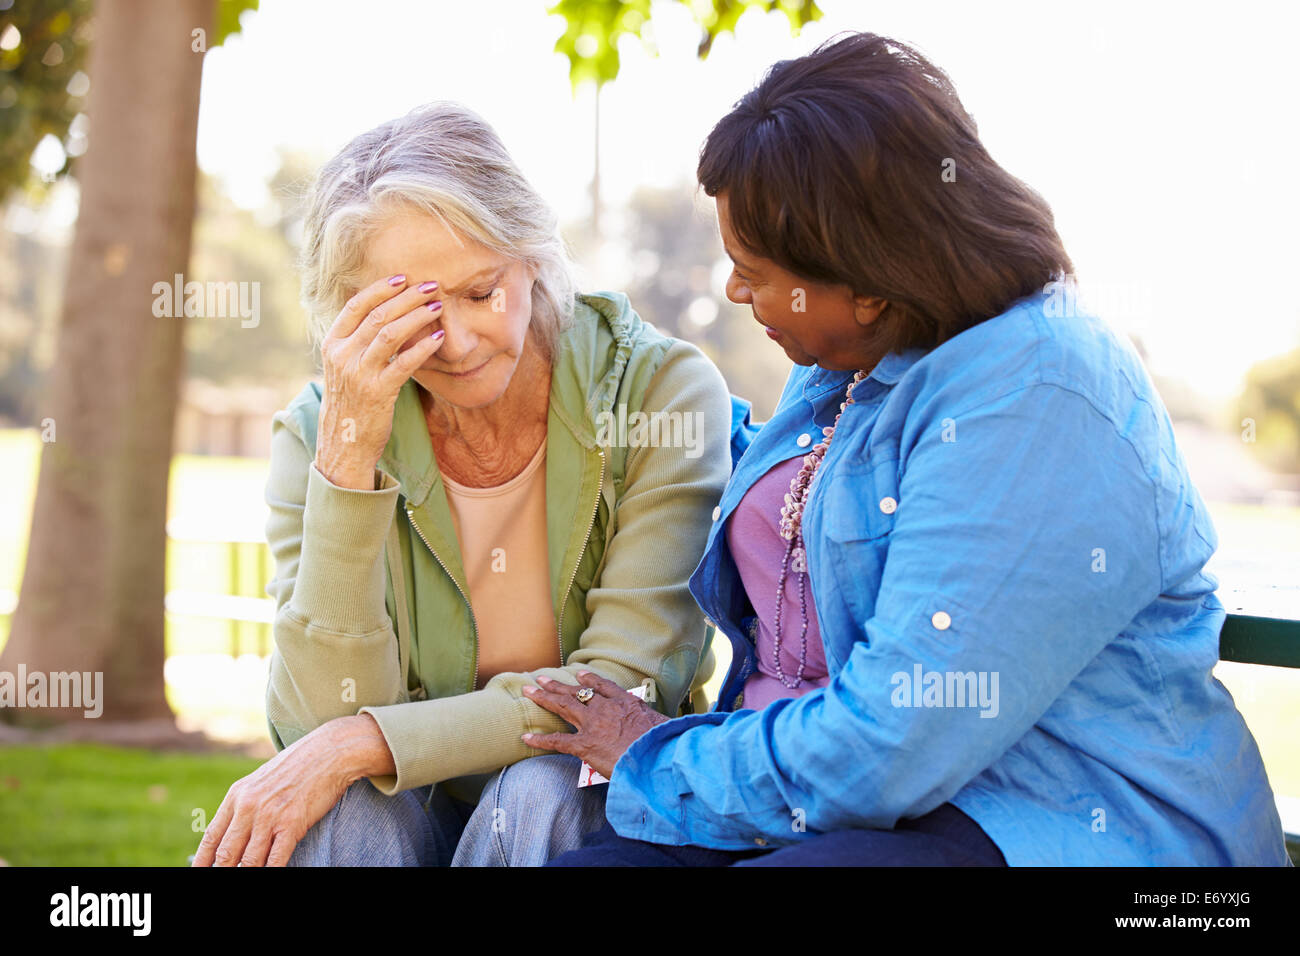 Woman Comforting Unhappy Senior Friend Outdoors - Stock Image